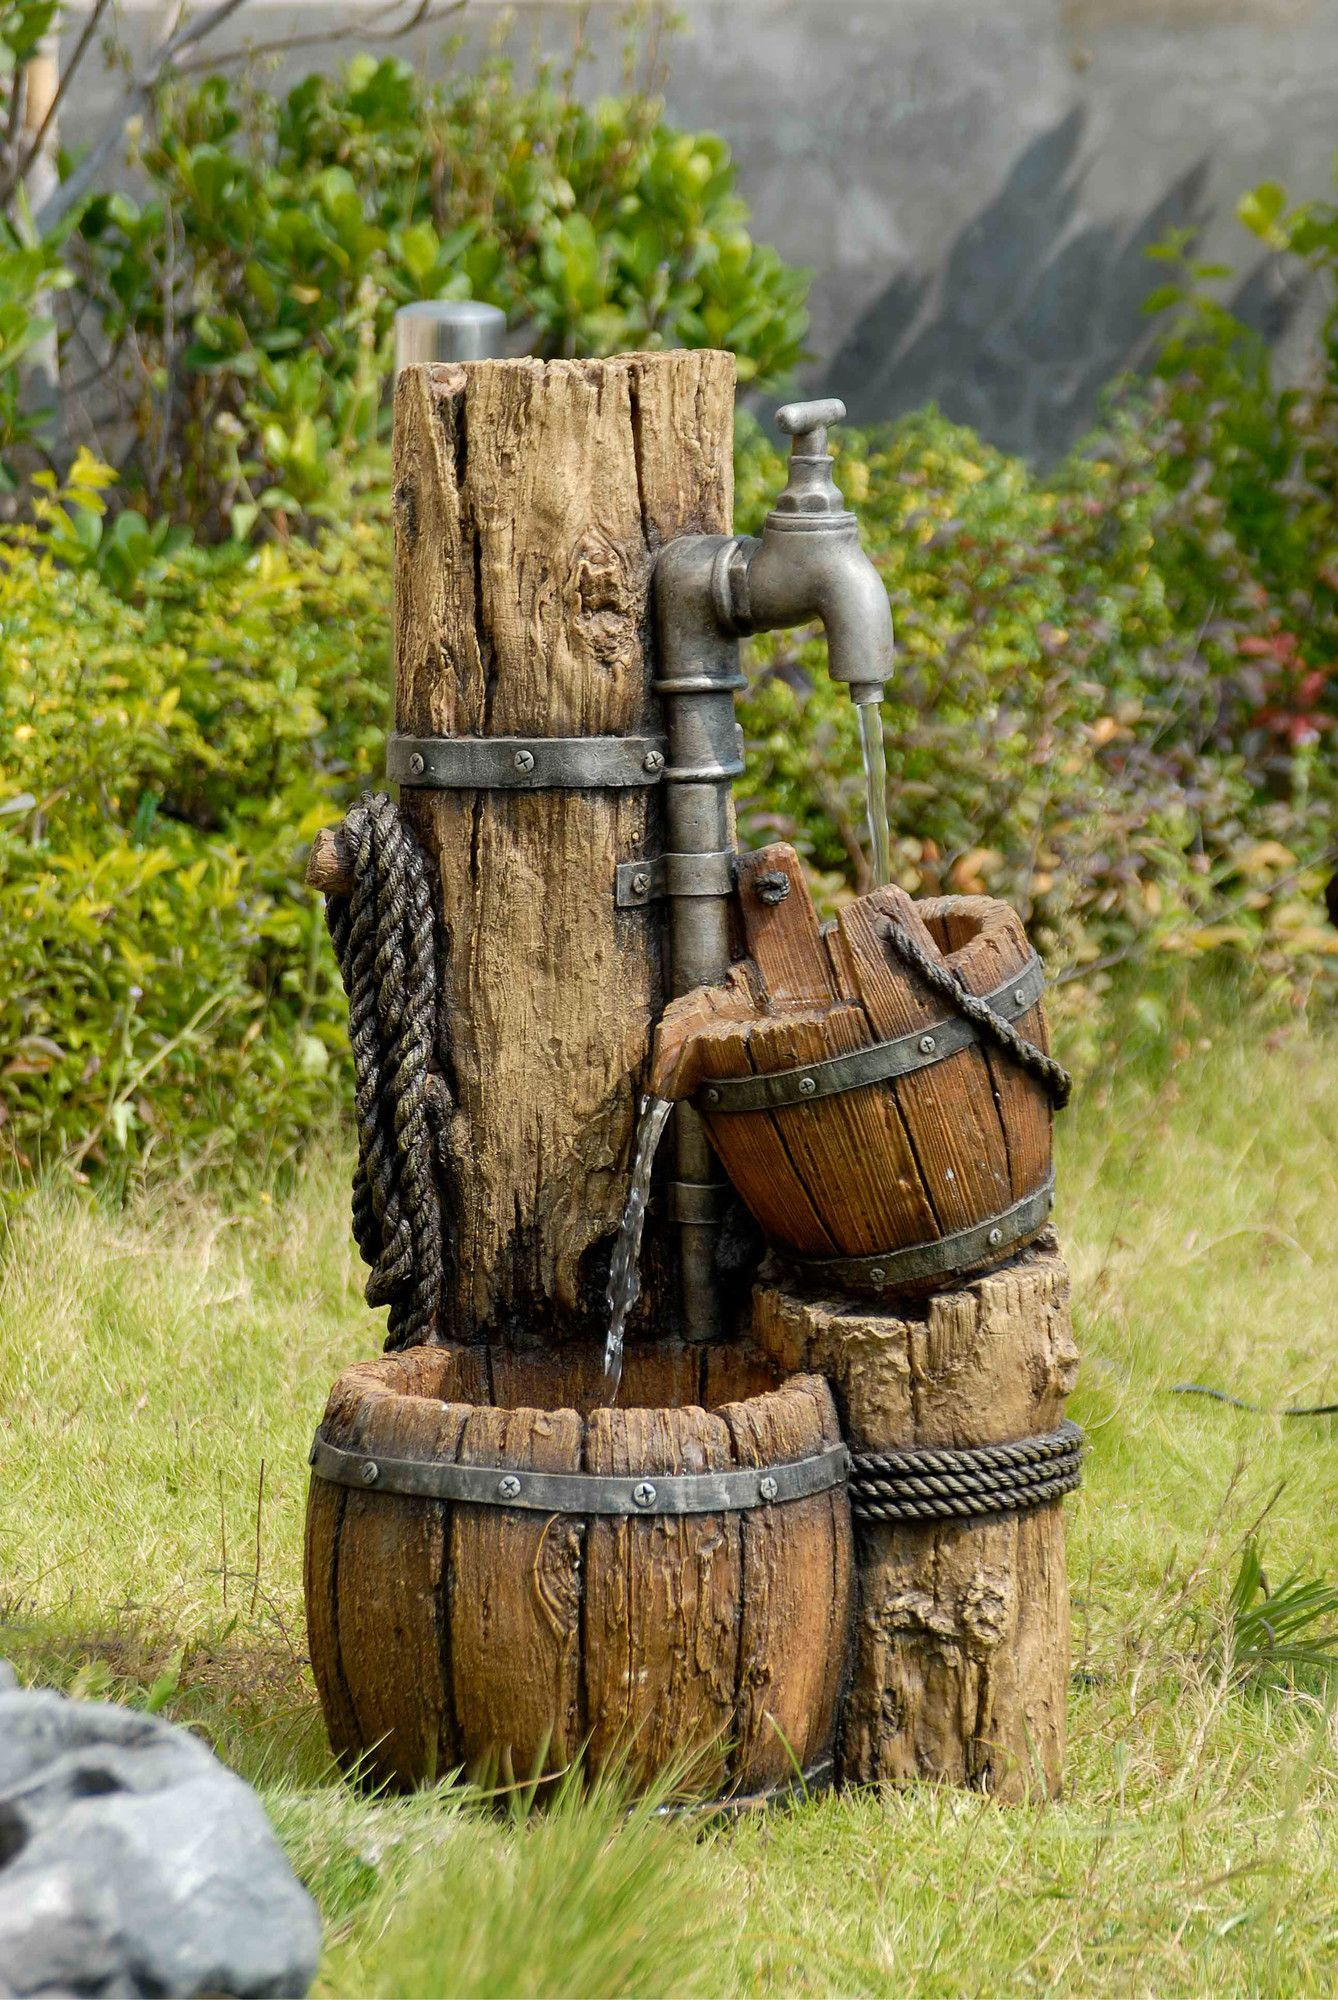 Polyresin Brunnen Selber Bauen Resin Fiberglass Tiered Wood Cask Fountain Brunnen Garten